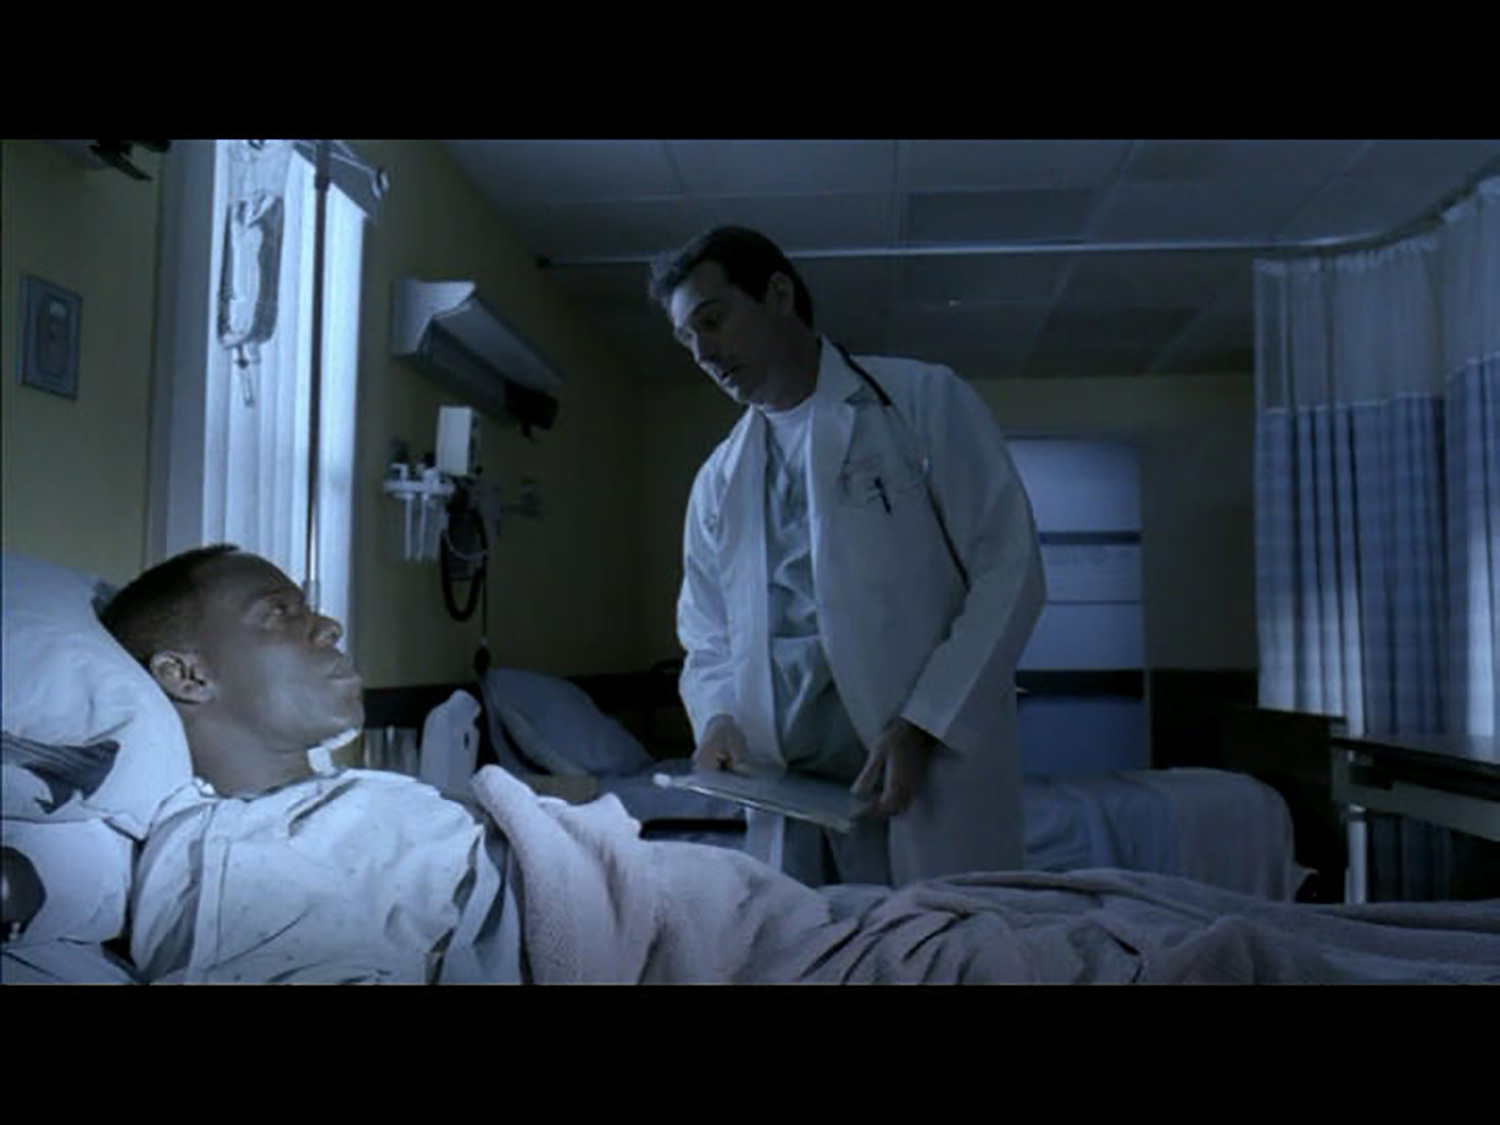 Mr. Williams (James McDaniel) recuperating after a major car accident with Dr. Toomey (Steve Burleigh) inthe Three Nations Medical Clinic stage set.